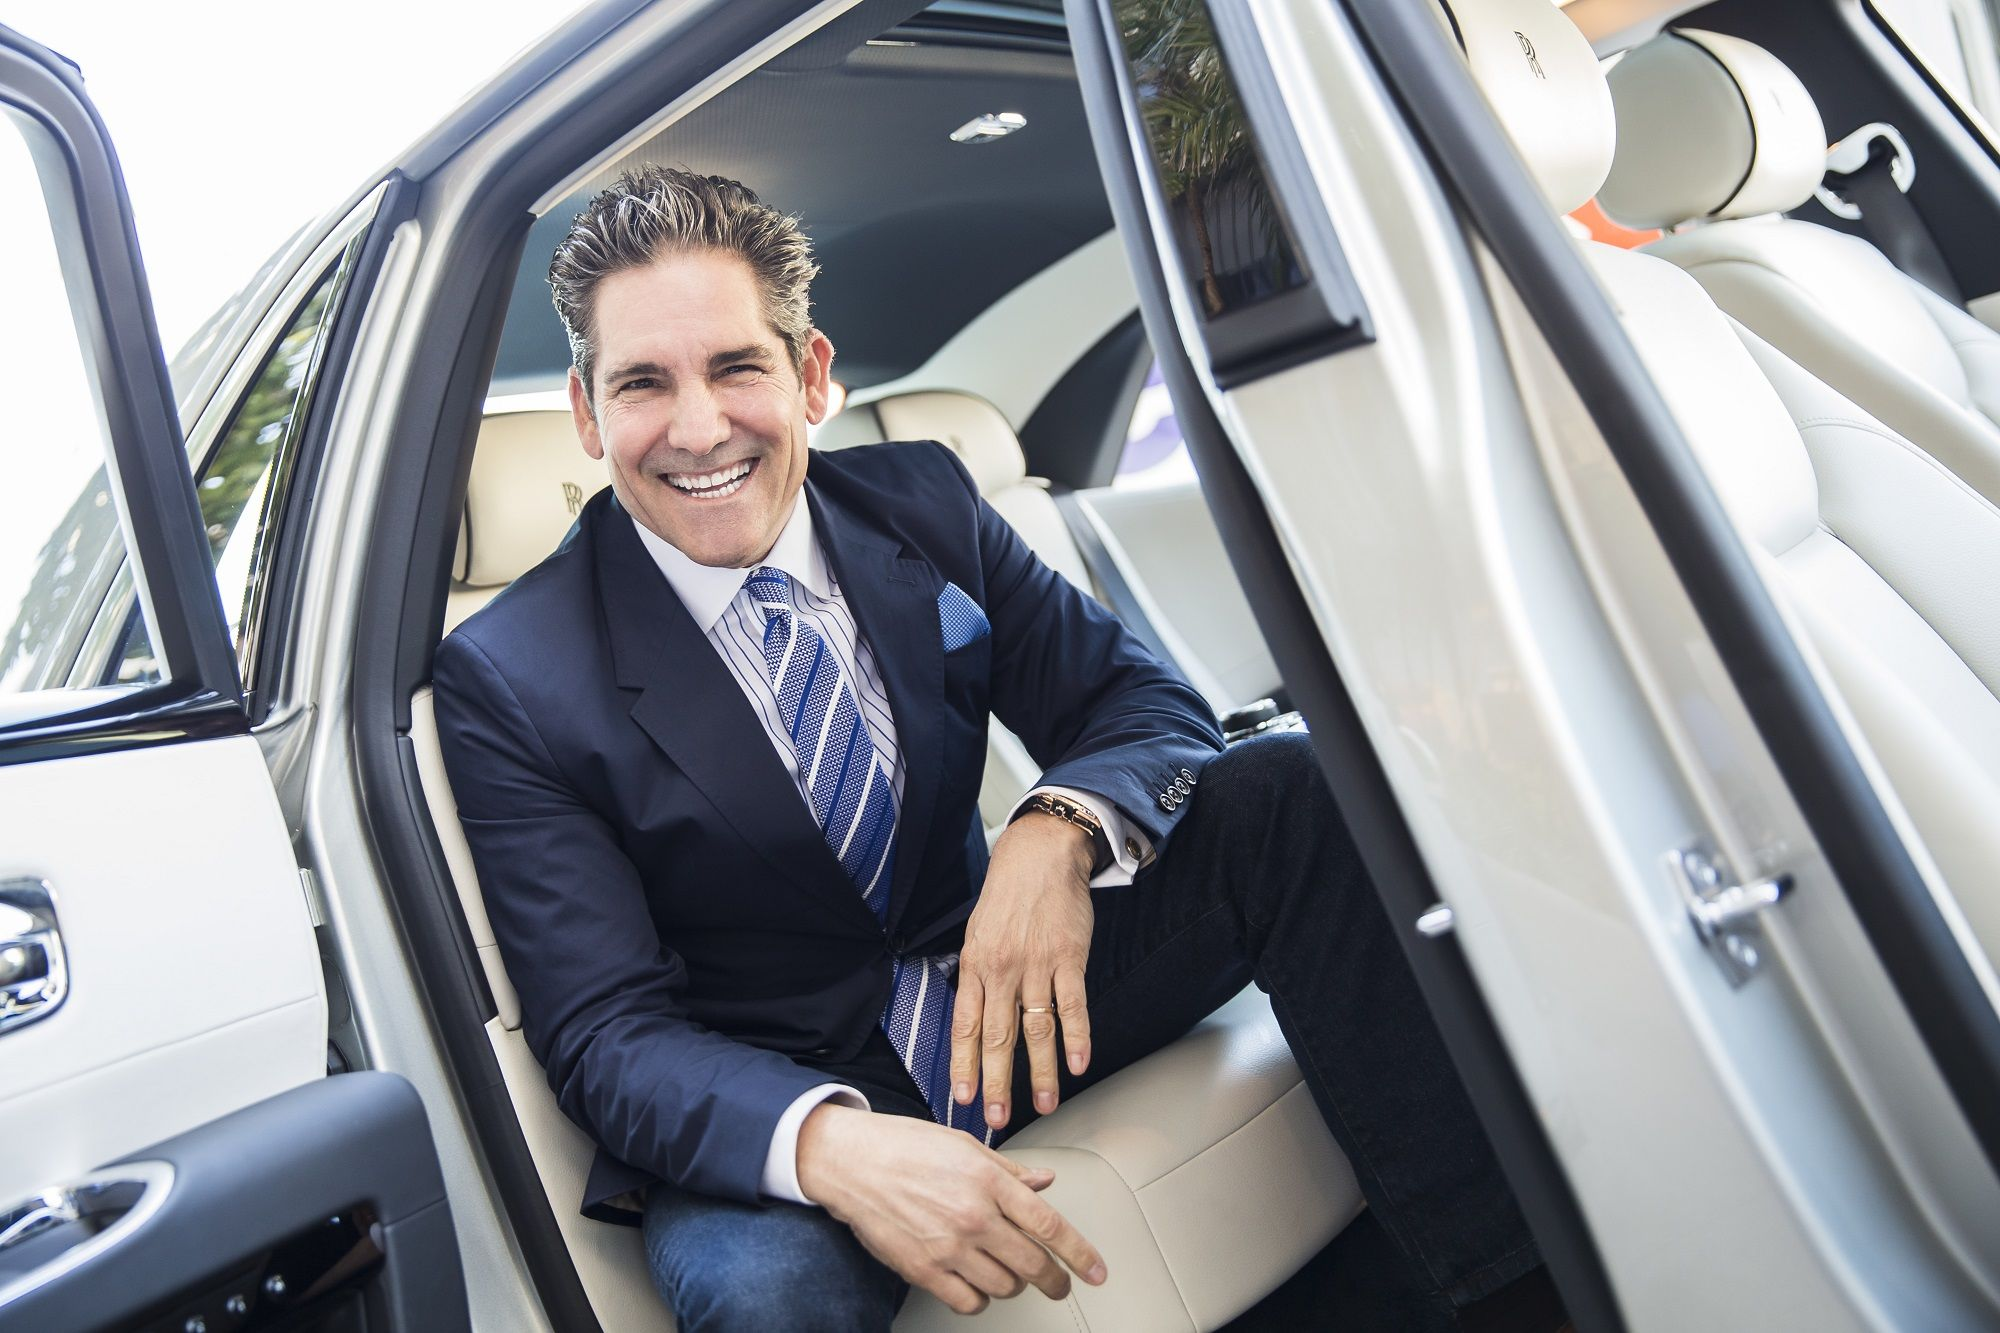 Grant Cardone is a successful entrepreneur. His net worth is around $300 Millions.